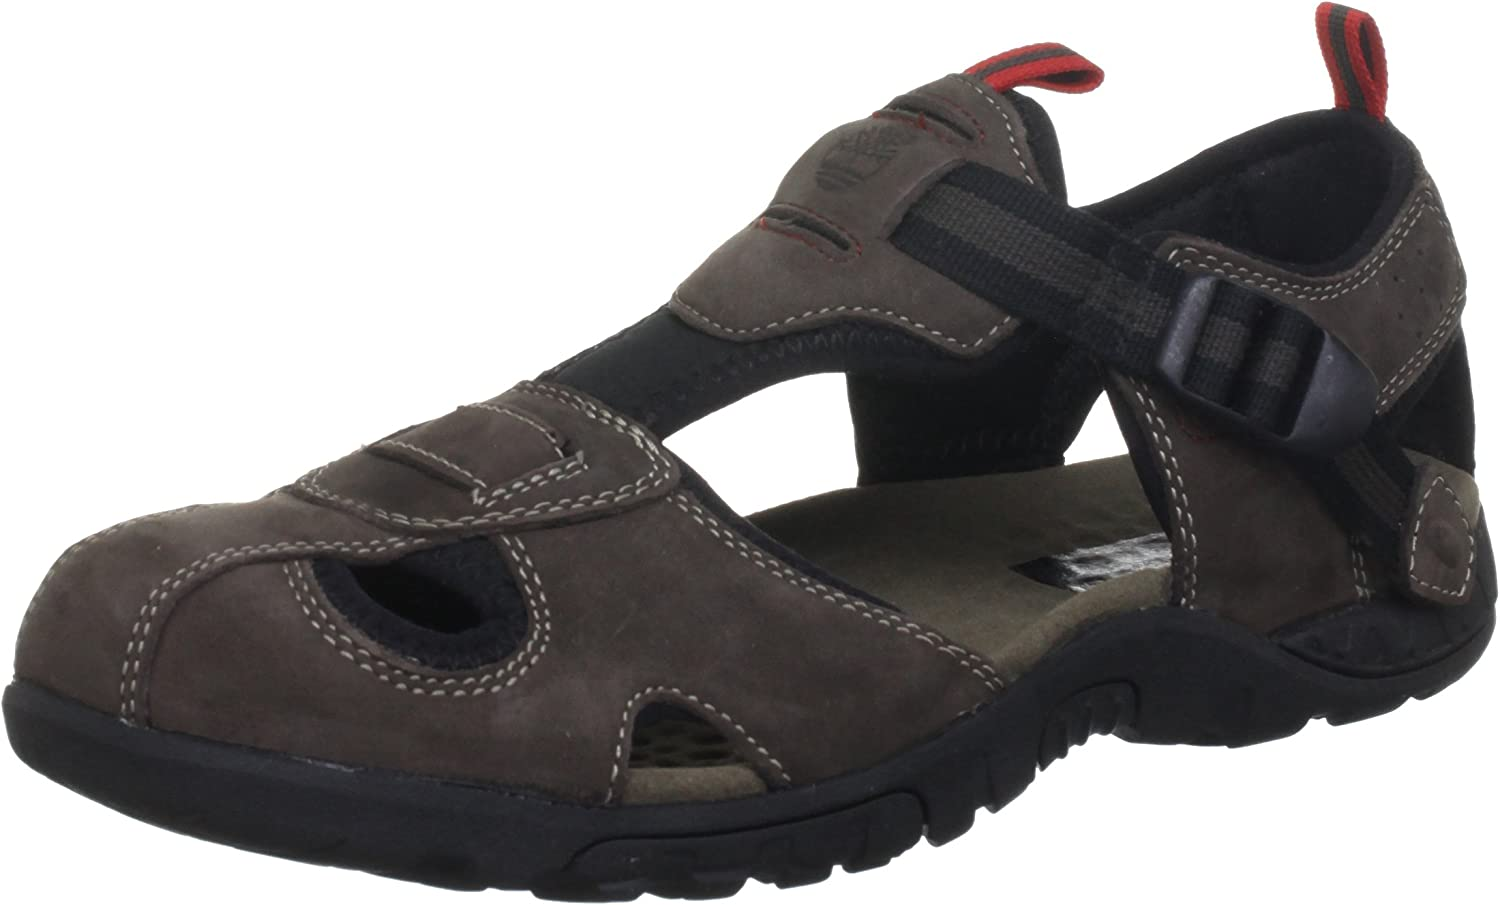 Hacia atrás carrera novia  Timberland Earthkeepers Front Country Sport Toe Mens Sandals Brown:  Amazon.ca: Shoes & Handbags